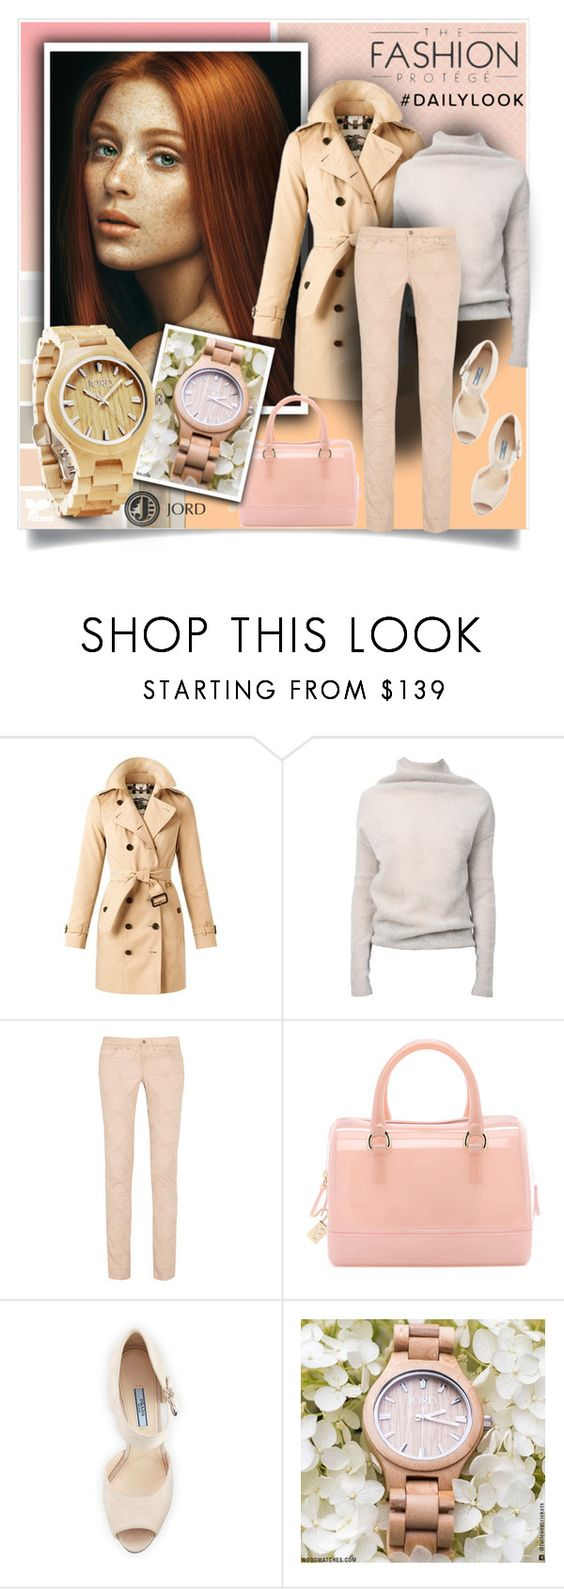 """""""Gift Idea"""" by sweetsely ❤ liked on Polyvore featuring Burberry, Rick Owens, Isabel Marant, Furla, Prada, Fieldcrest, polyvoreeditorial and jord"""